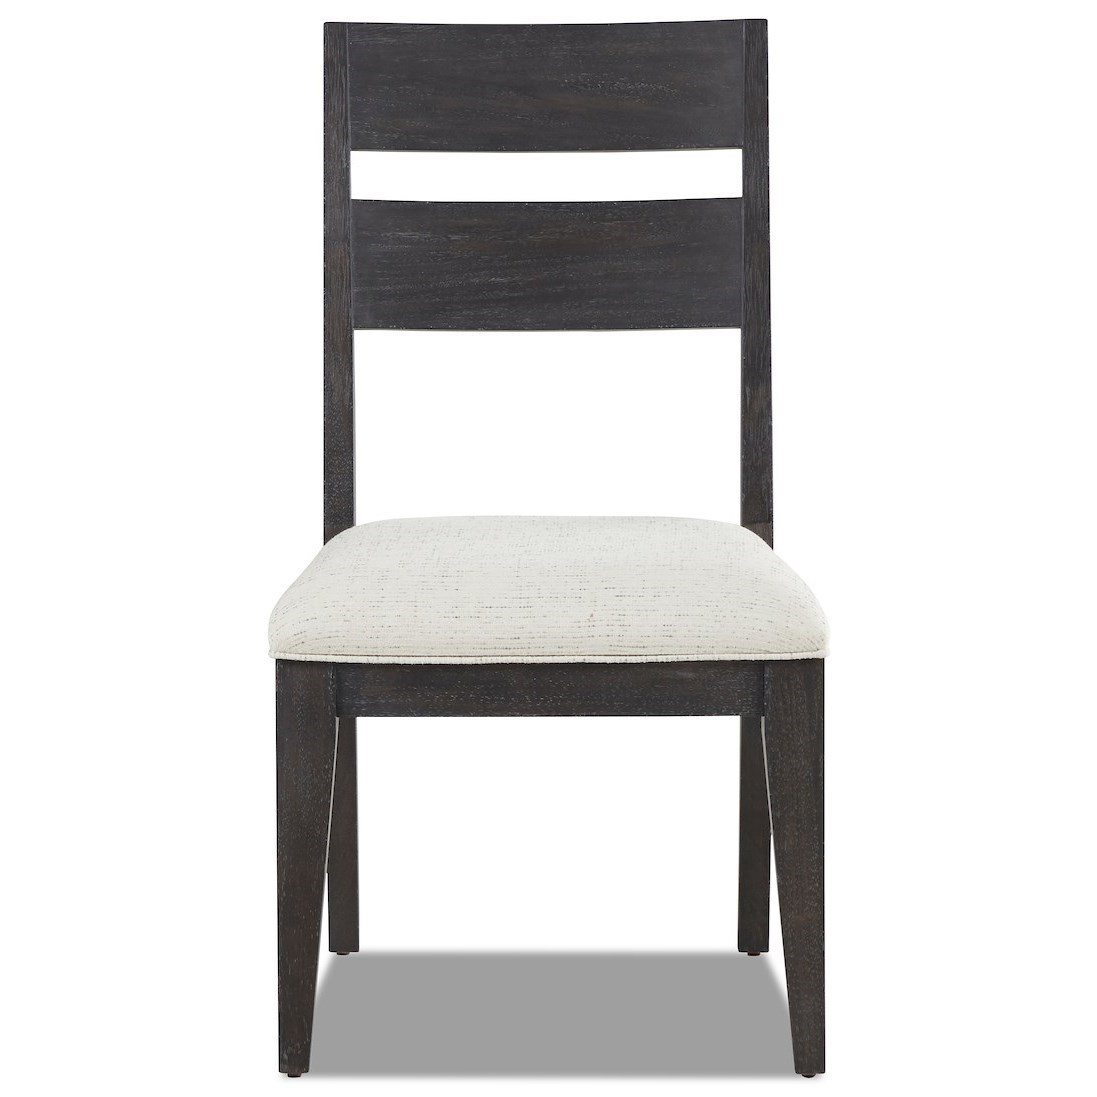 City Limits Dining Room Side Chair by Trisha Yearwood Home Collection by Klaussner at Darvin Furniture